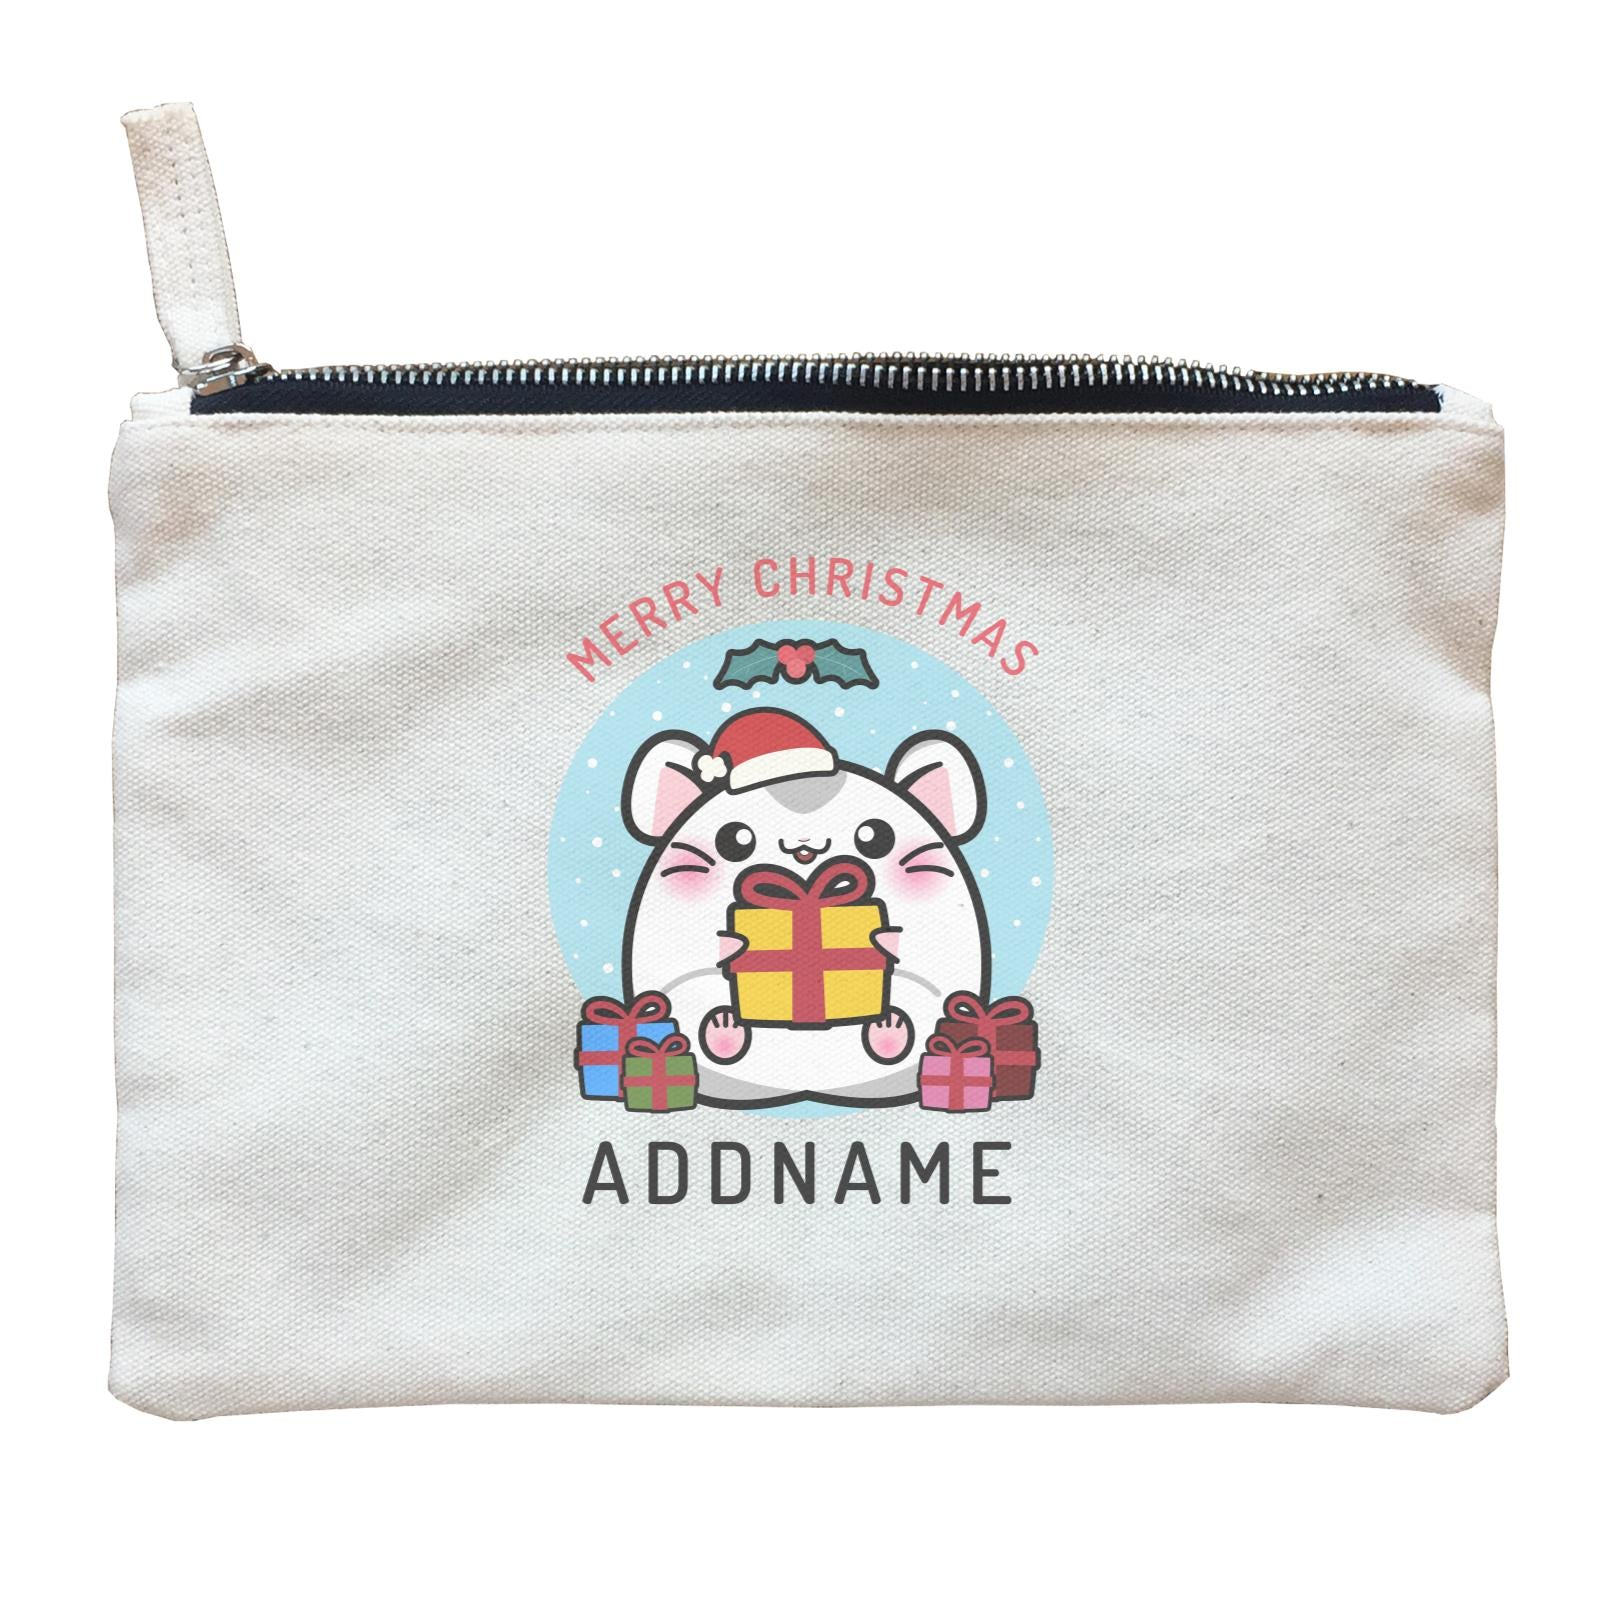 Merry Christmas Cute Santa Boy Hamster with Gifts Zipper Pouch